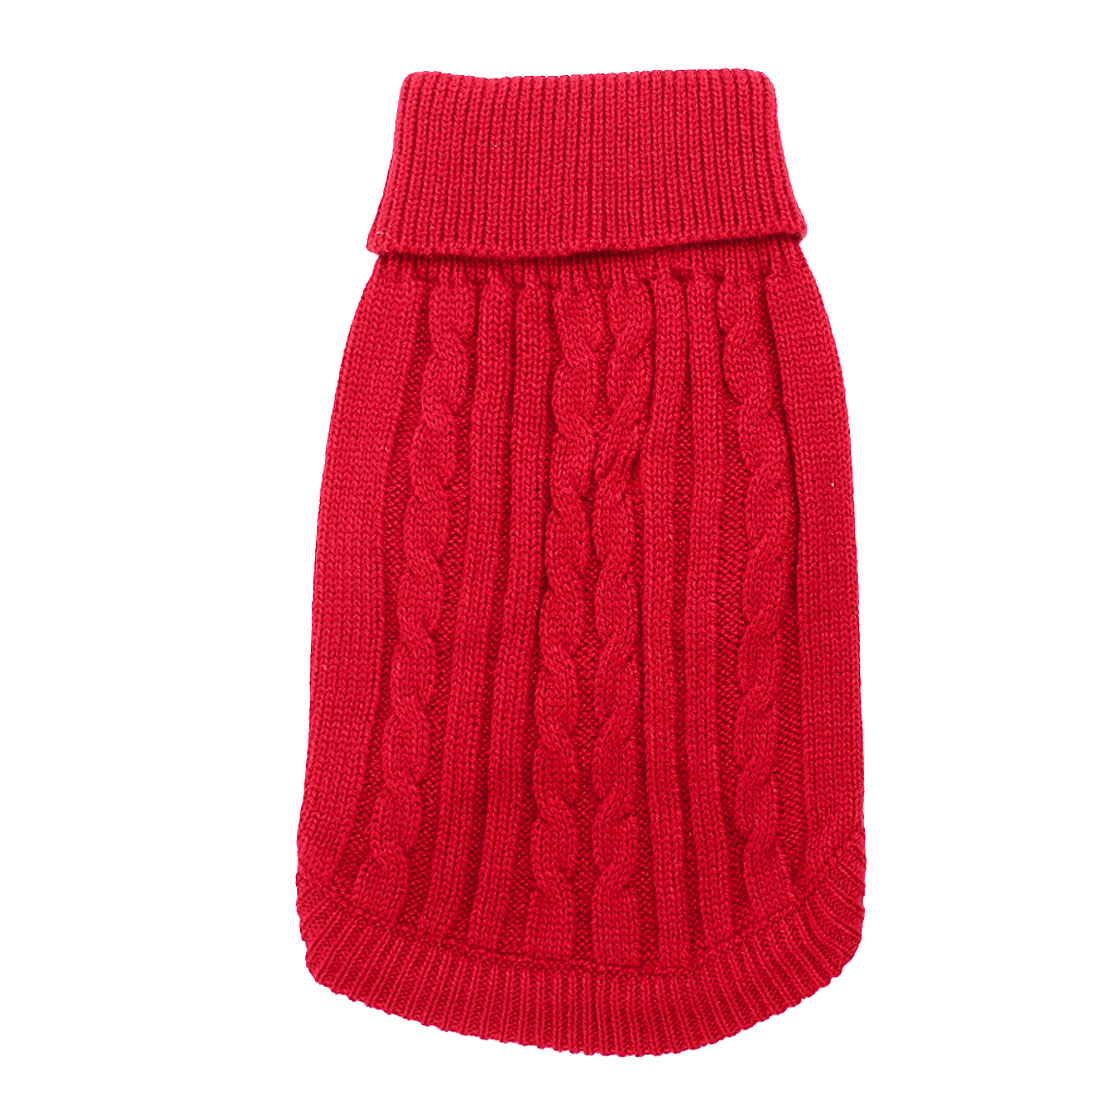 Winter Warm Red Cable Knit Turtleneck Pet Dog Puppy Clothing Sweater M